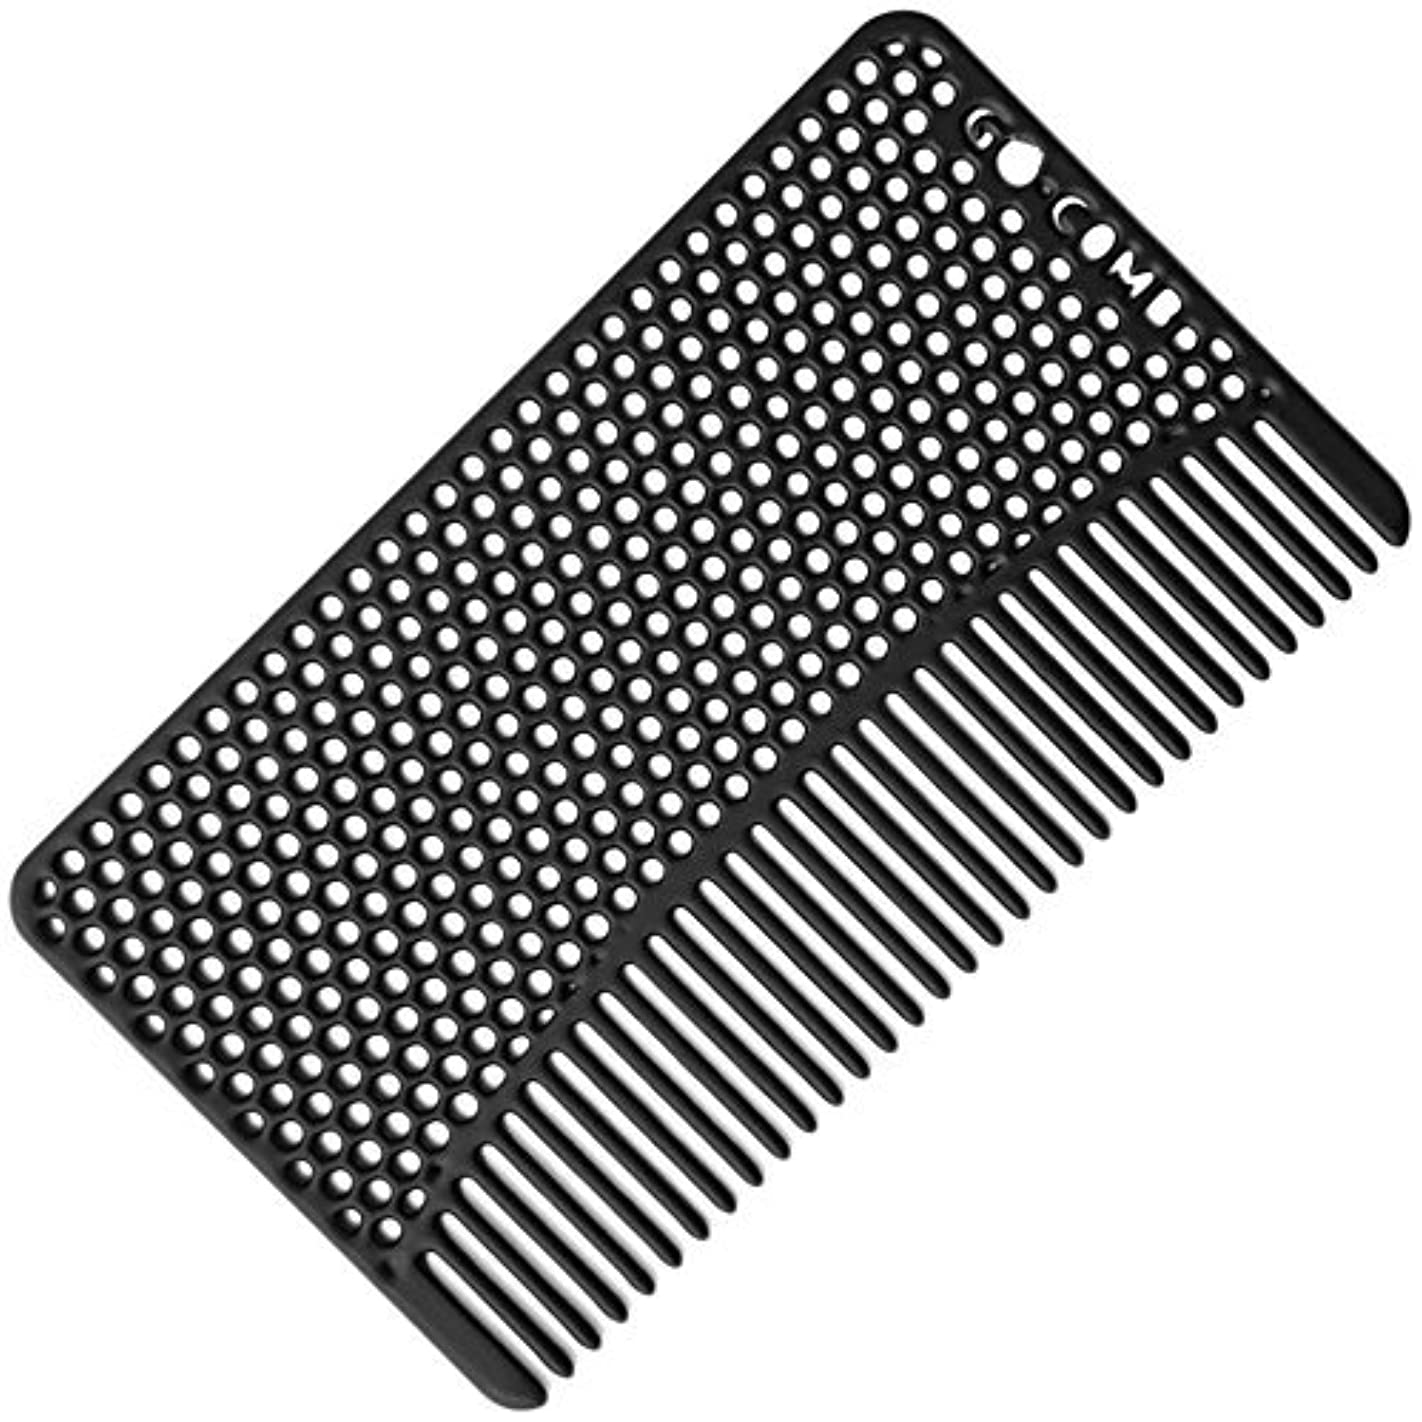 血まみれの無謀十代の若者たちGo-Comb - Wallet Comb - Sleek, Durable Stainless Steel Hair and Beard Comb - Black [並行輸入品]